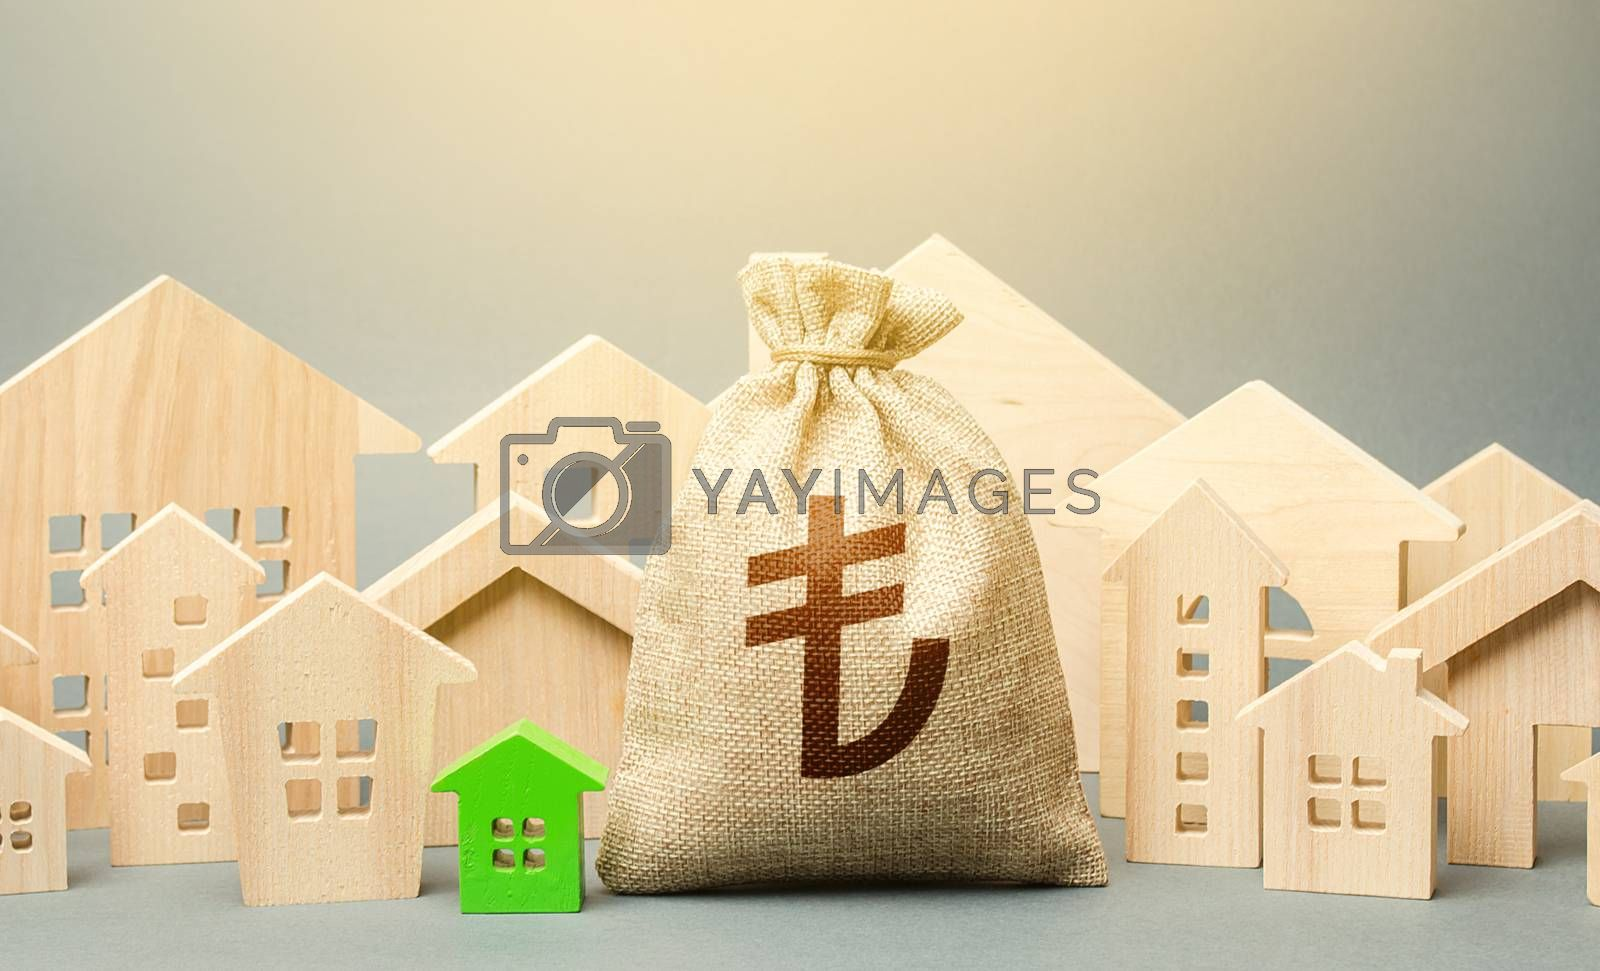 Turkish lira money bag and a city of house figures. Investments. City municipal budget. Buying real estate, fair price. Cost of living. Property tax. Development, renovation of buildings.